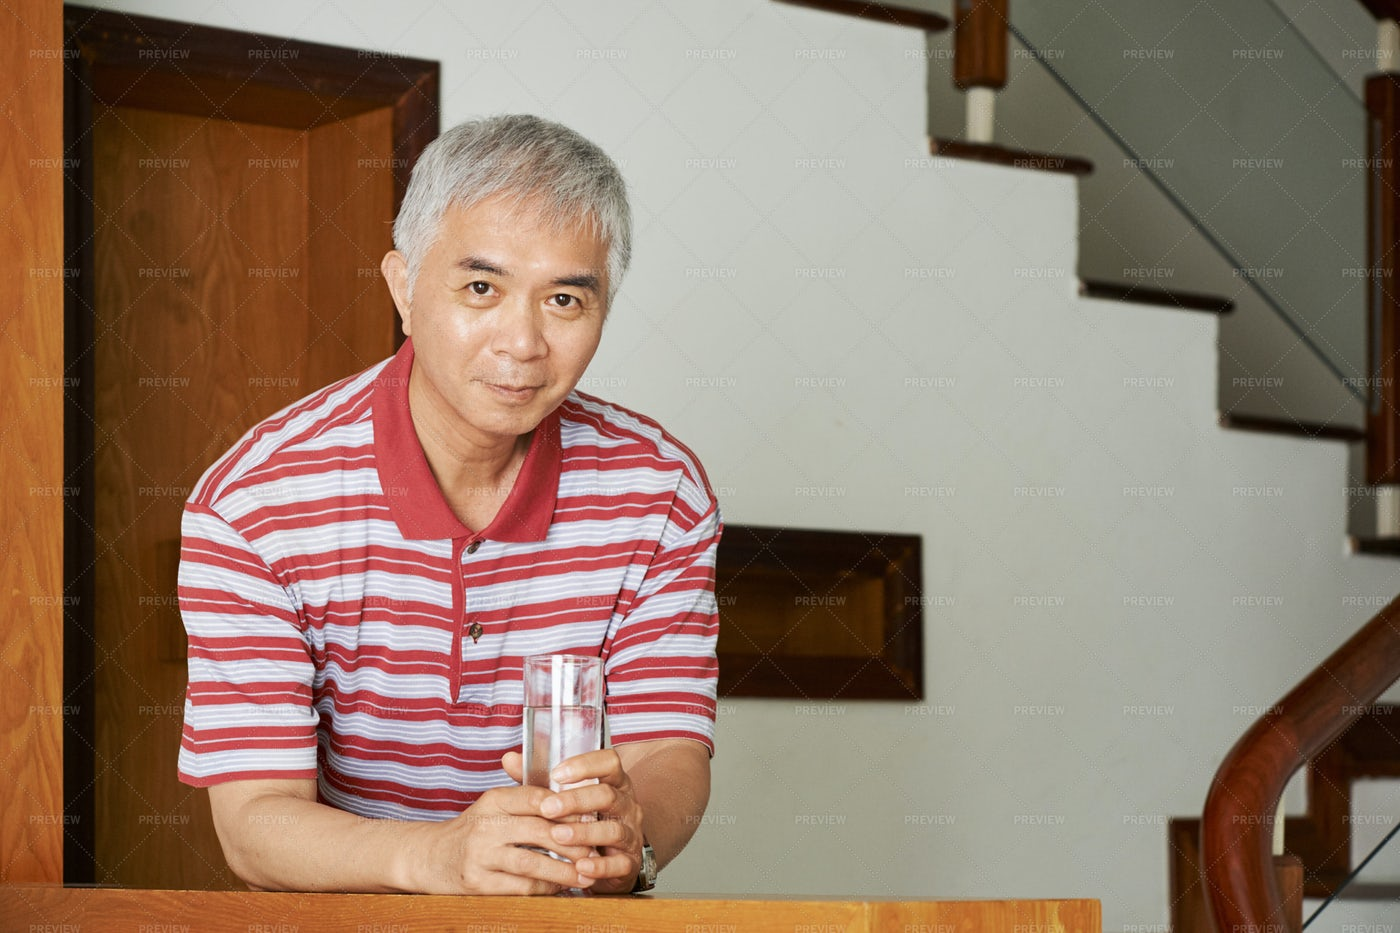 Asian Man With Glass Of Water: Stock Photos